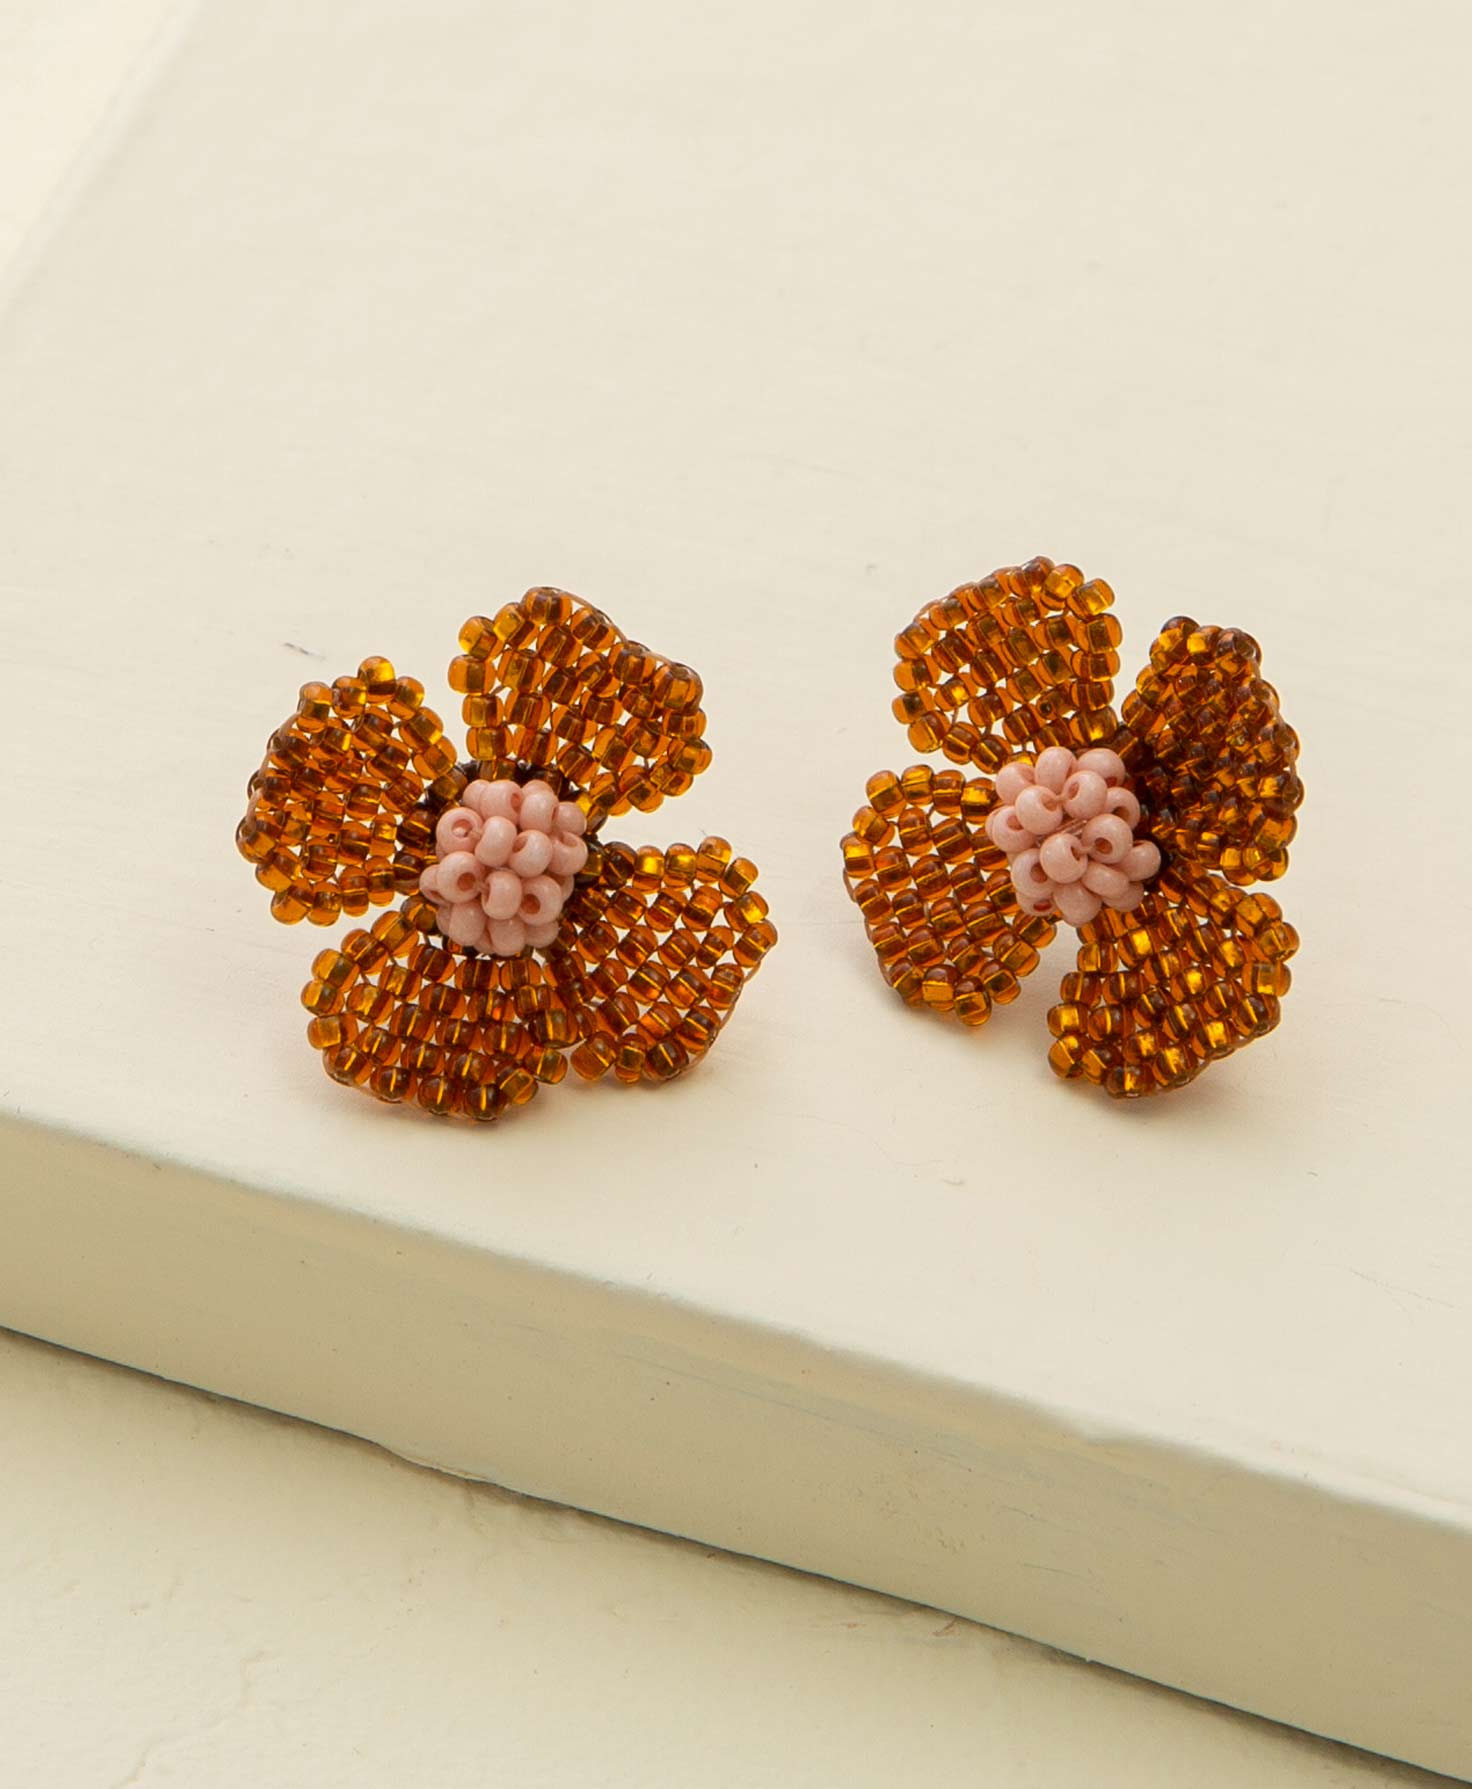 The Trellis Earrings rest on a cream-colored block. They are stud-style earrings shaped like flowers with four petals. The petals are formed from many honey-colored, transparent glass beads. The centers of the flowers are formed from a cluster of opaque, blush-colored glass beads.